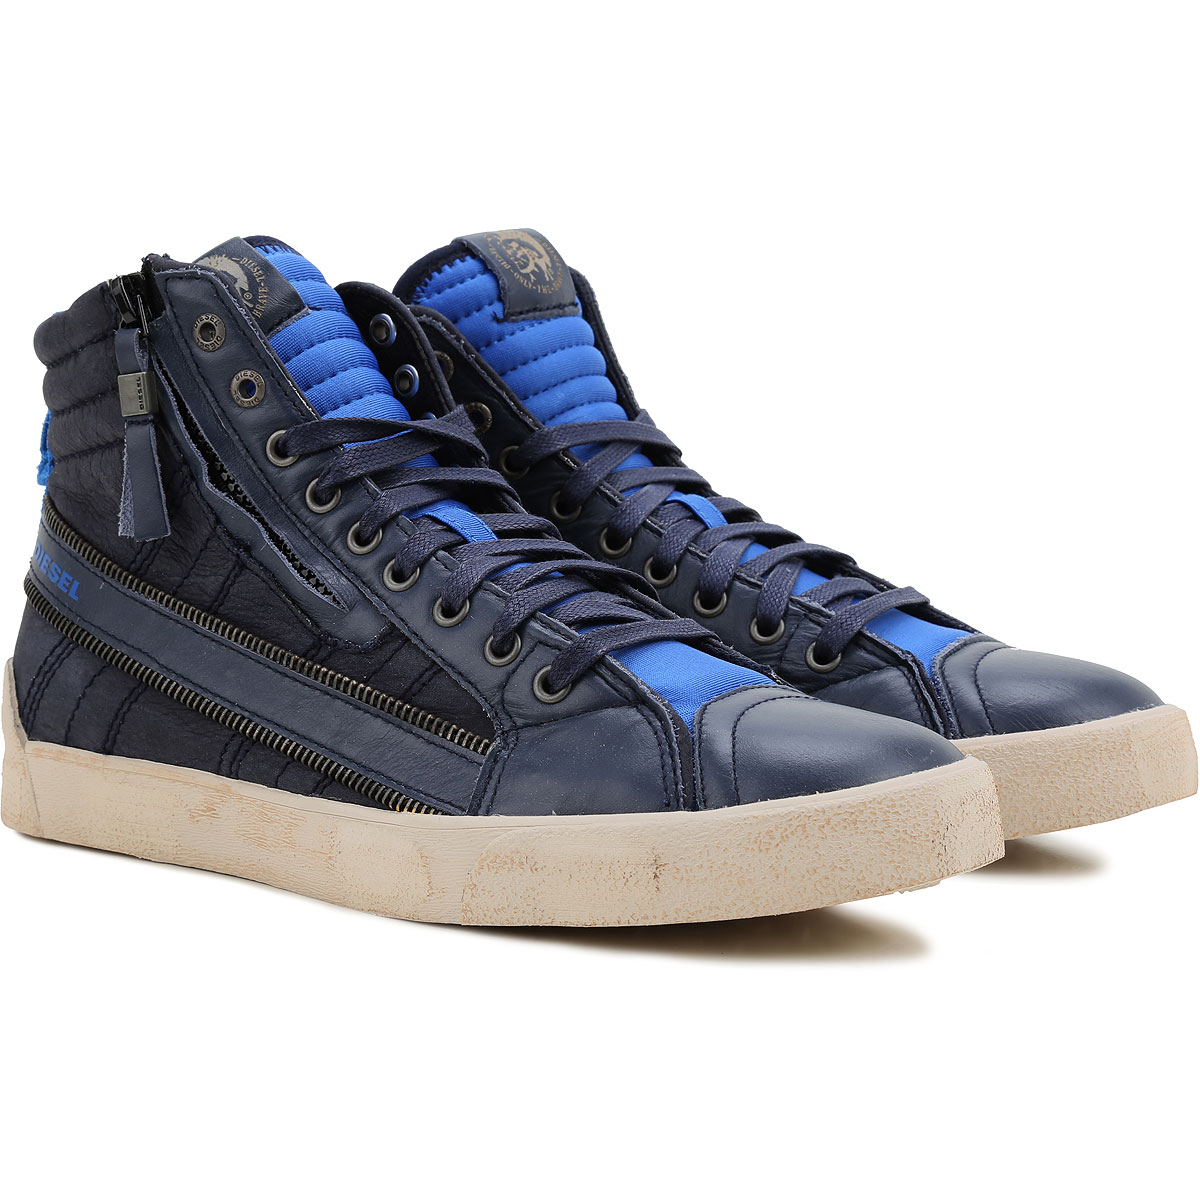 Mens Shoes Diesel, Style code: y01169-p1038-h6039